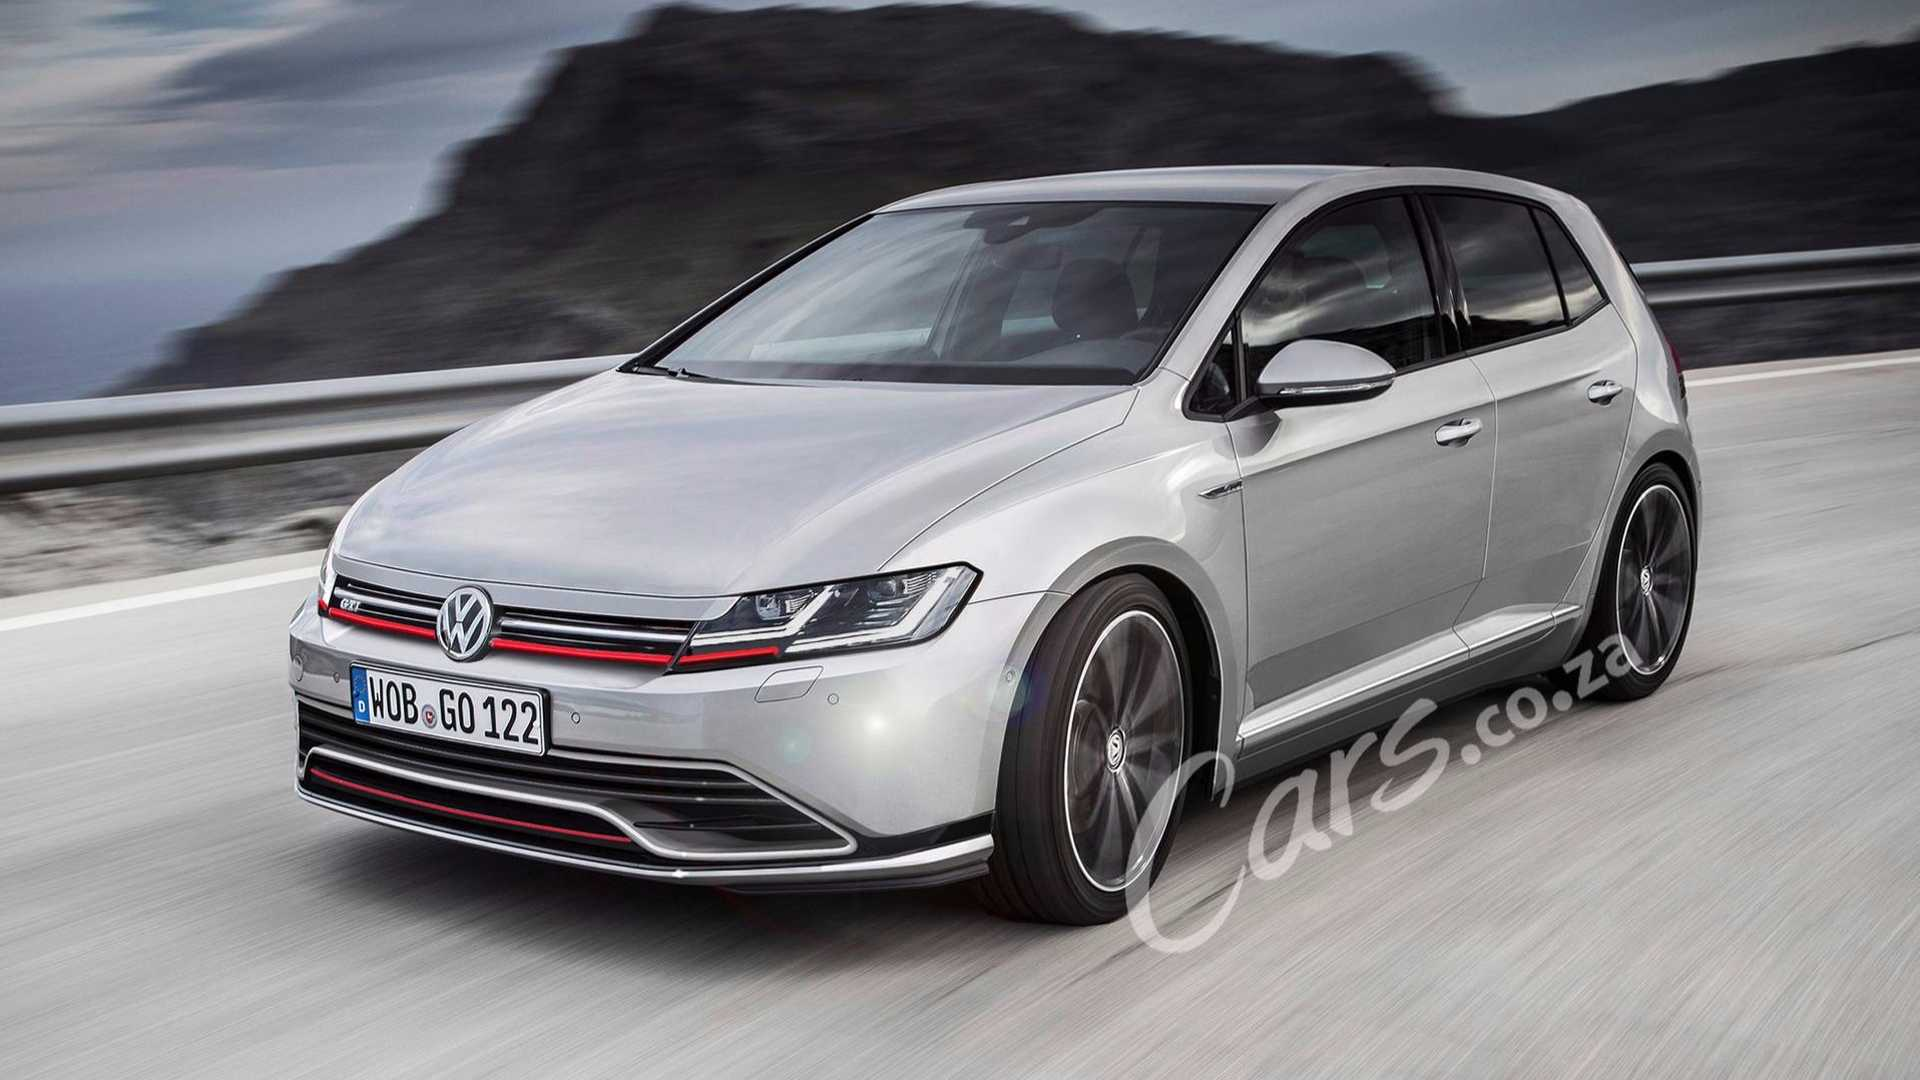 52 All New Volkswagen Cars 2020 Exterior and Interior with Volkswagen Cars 2020